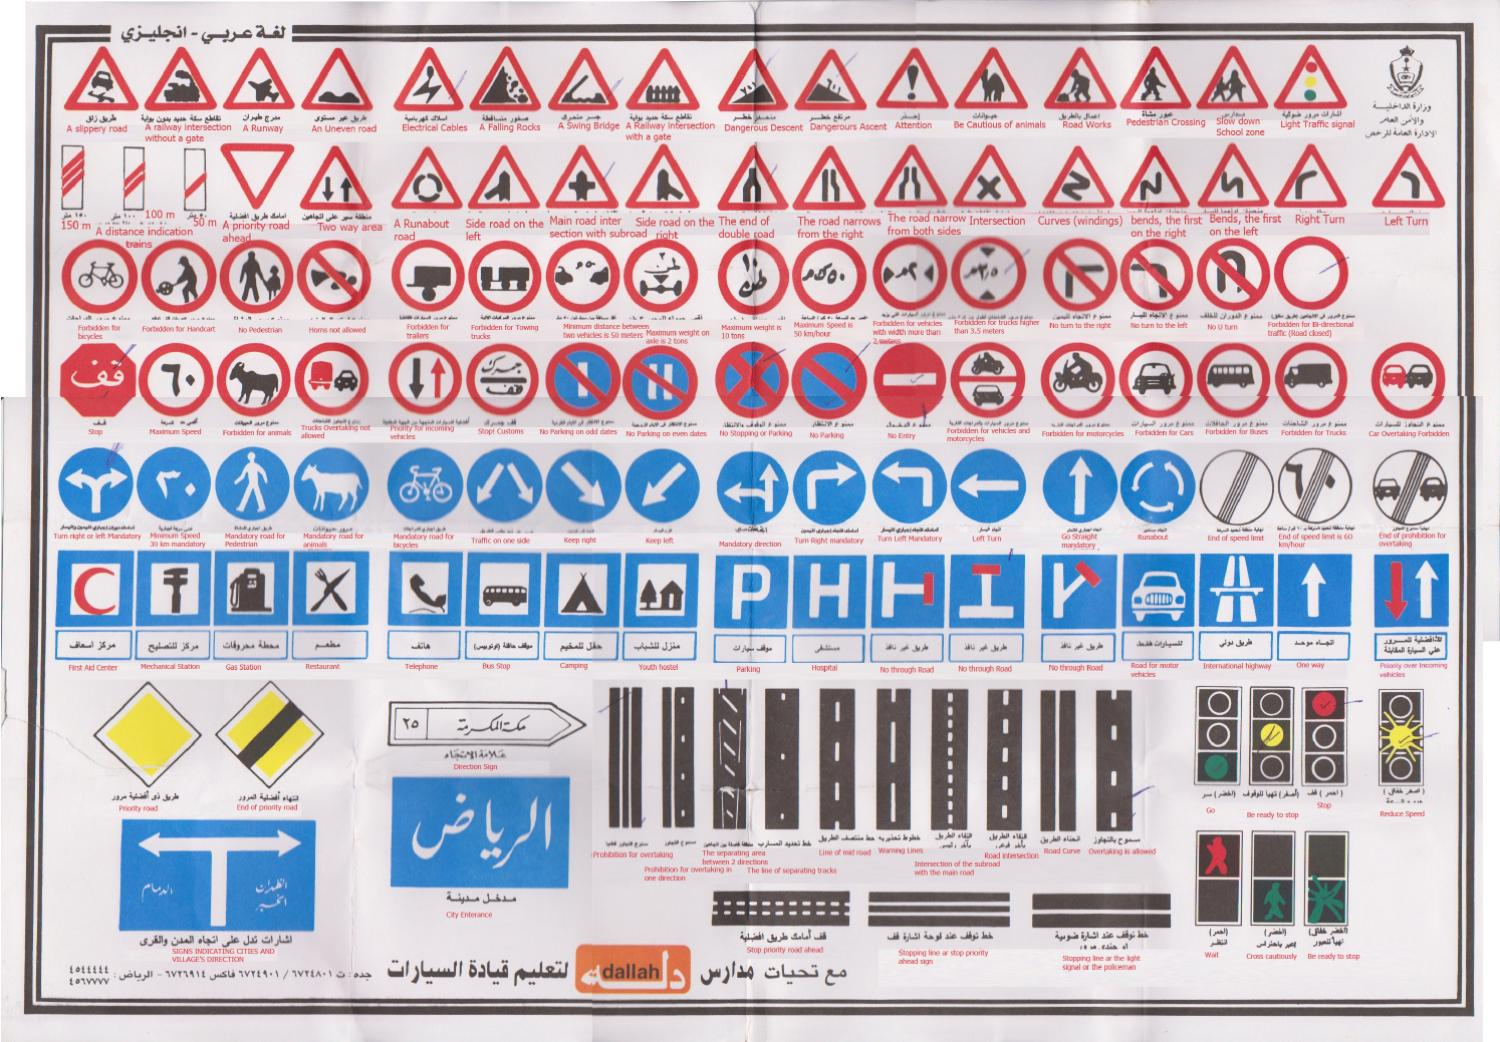 Driving Test Symbols And Signs By Ryan Dani Issuu